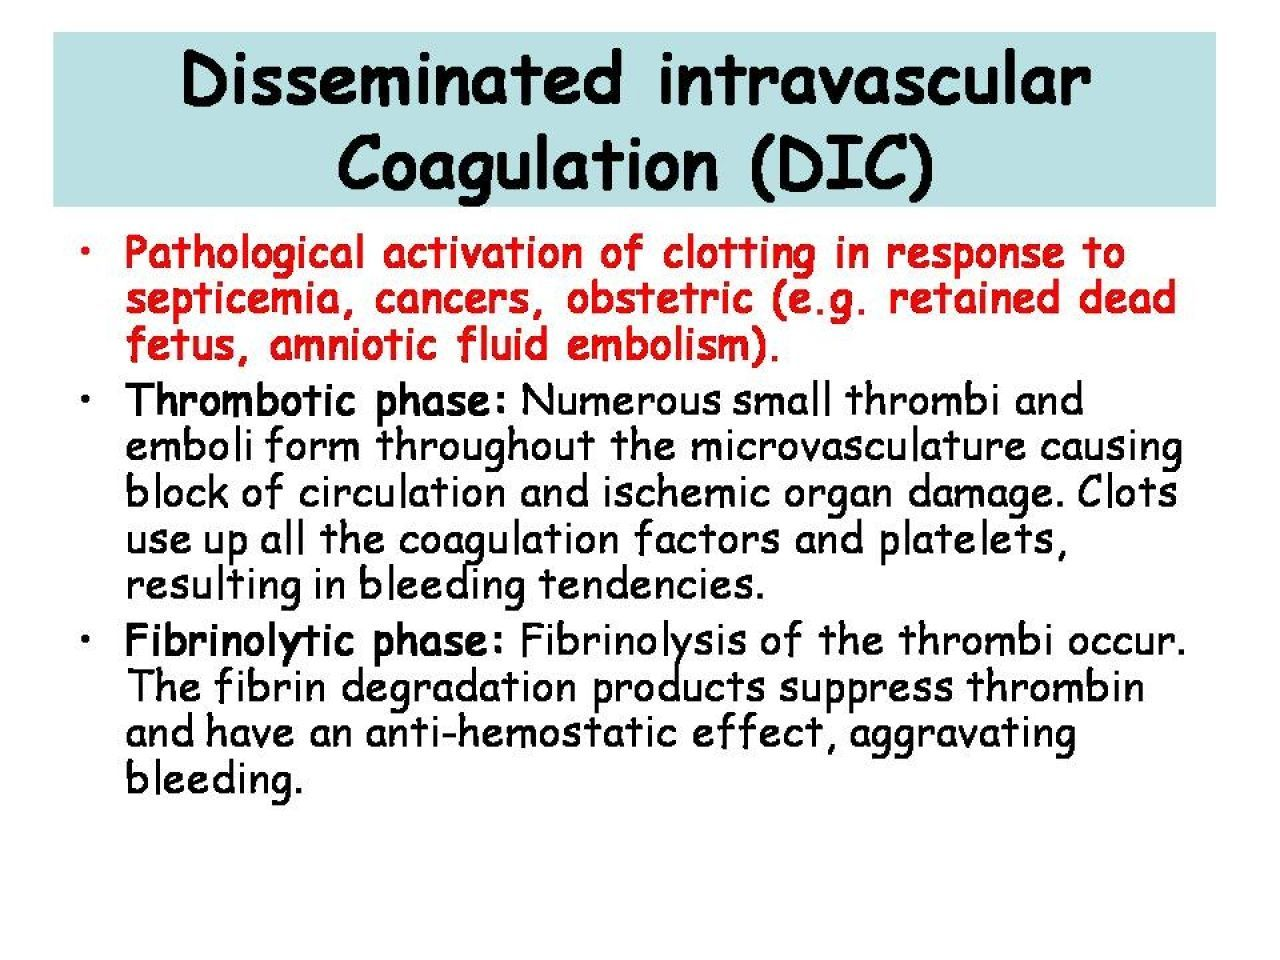 Disseminated Intravascular Coagulation What You Need To Know In